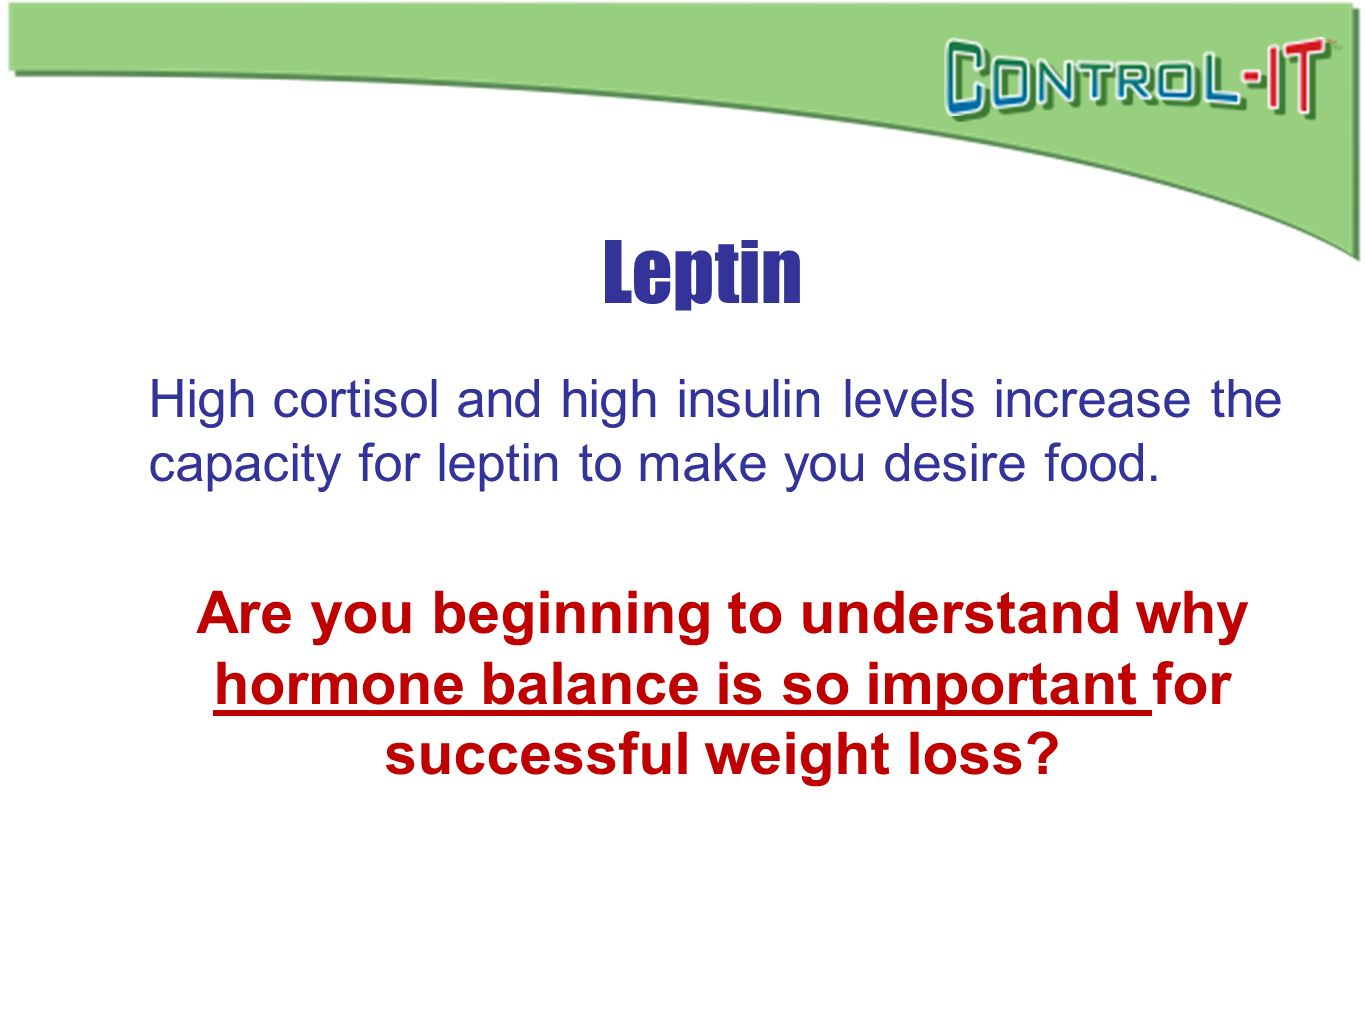 Leptin High cortisol and high insulin levels increase the capacity for leptin to make you desire food.